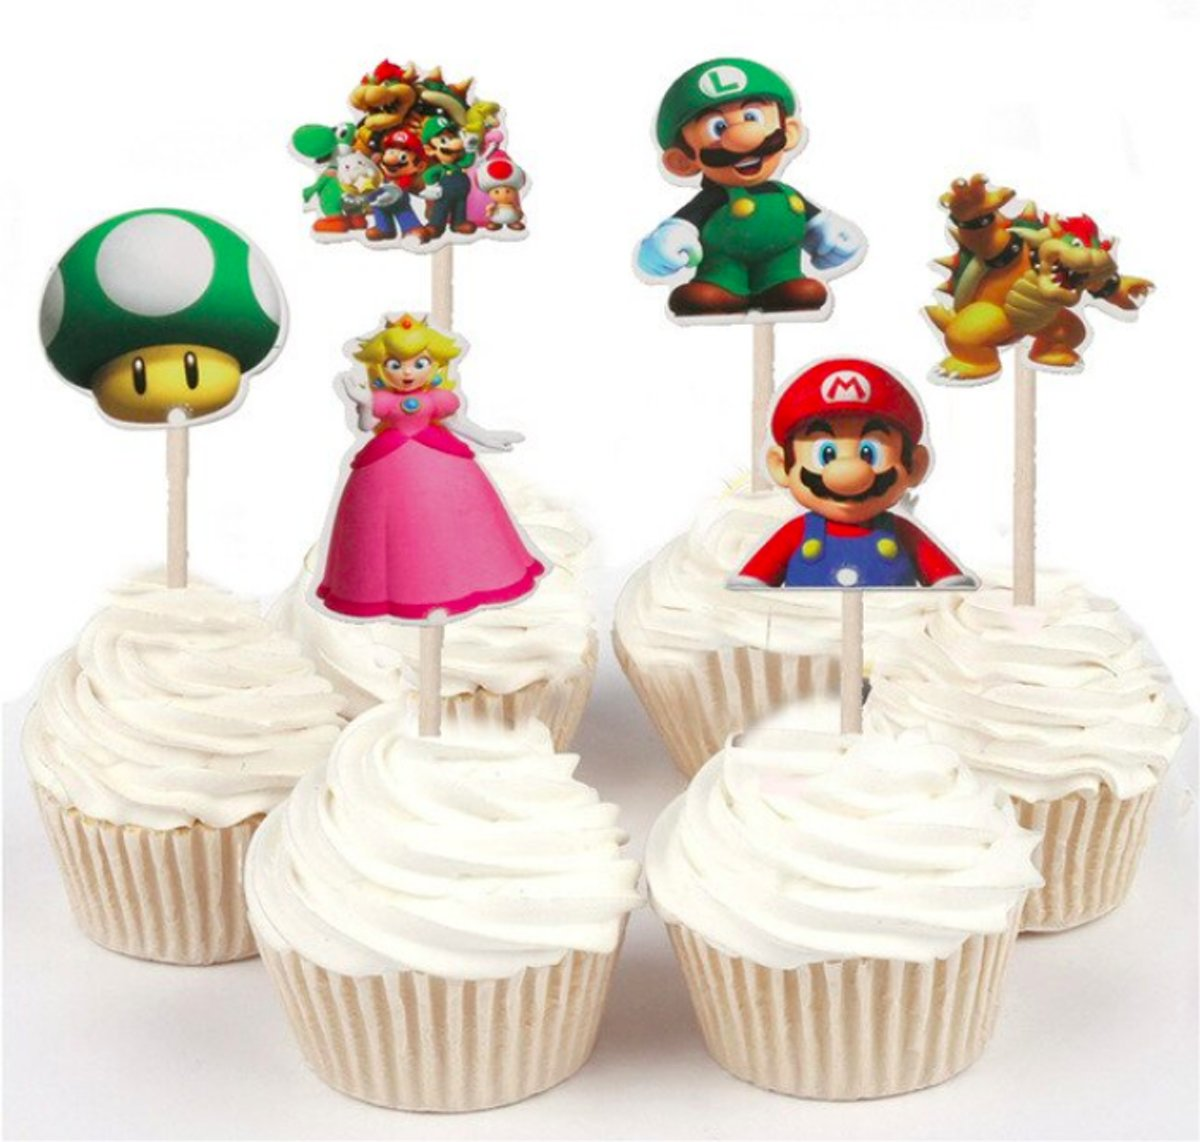 ProductsGoods - 48 x Leuke Mario coctailprikkers